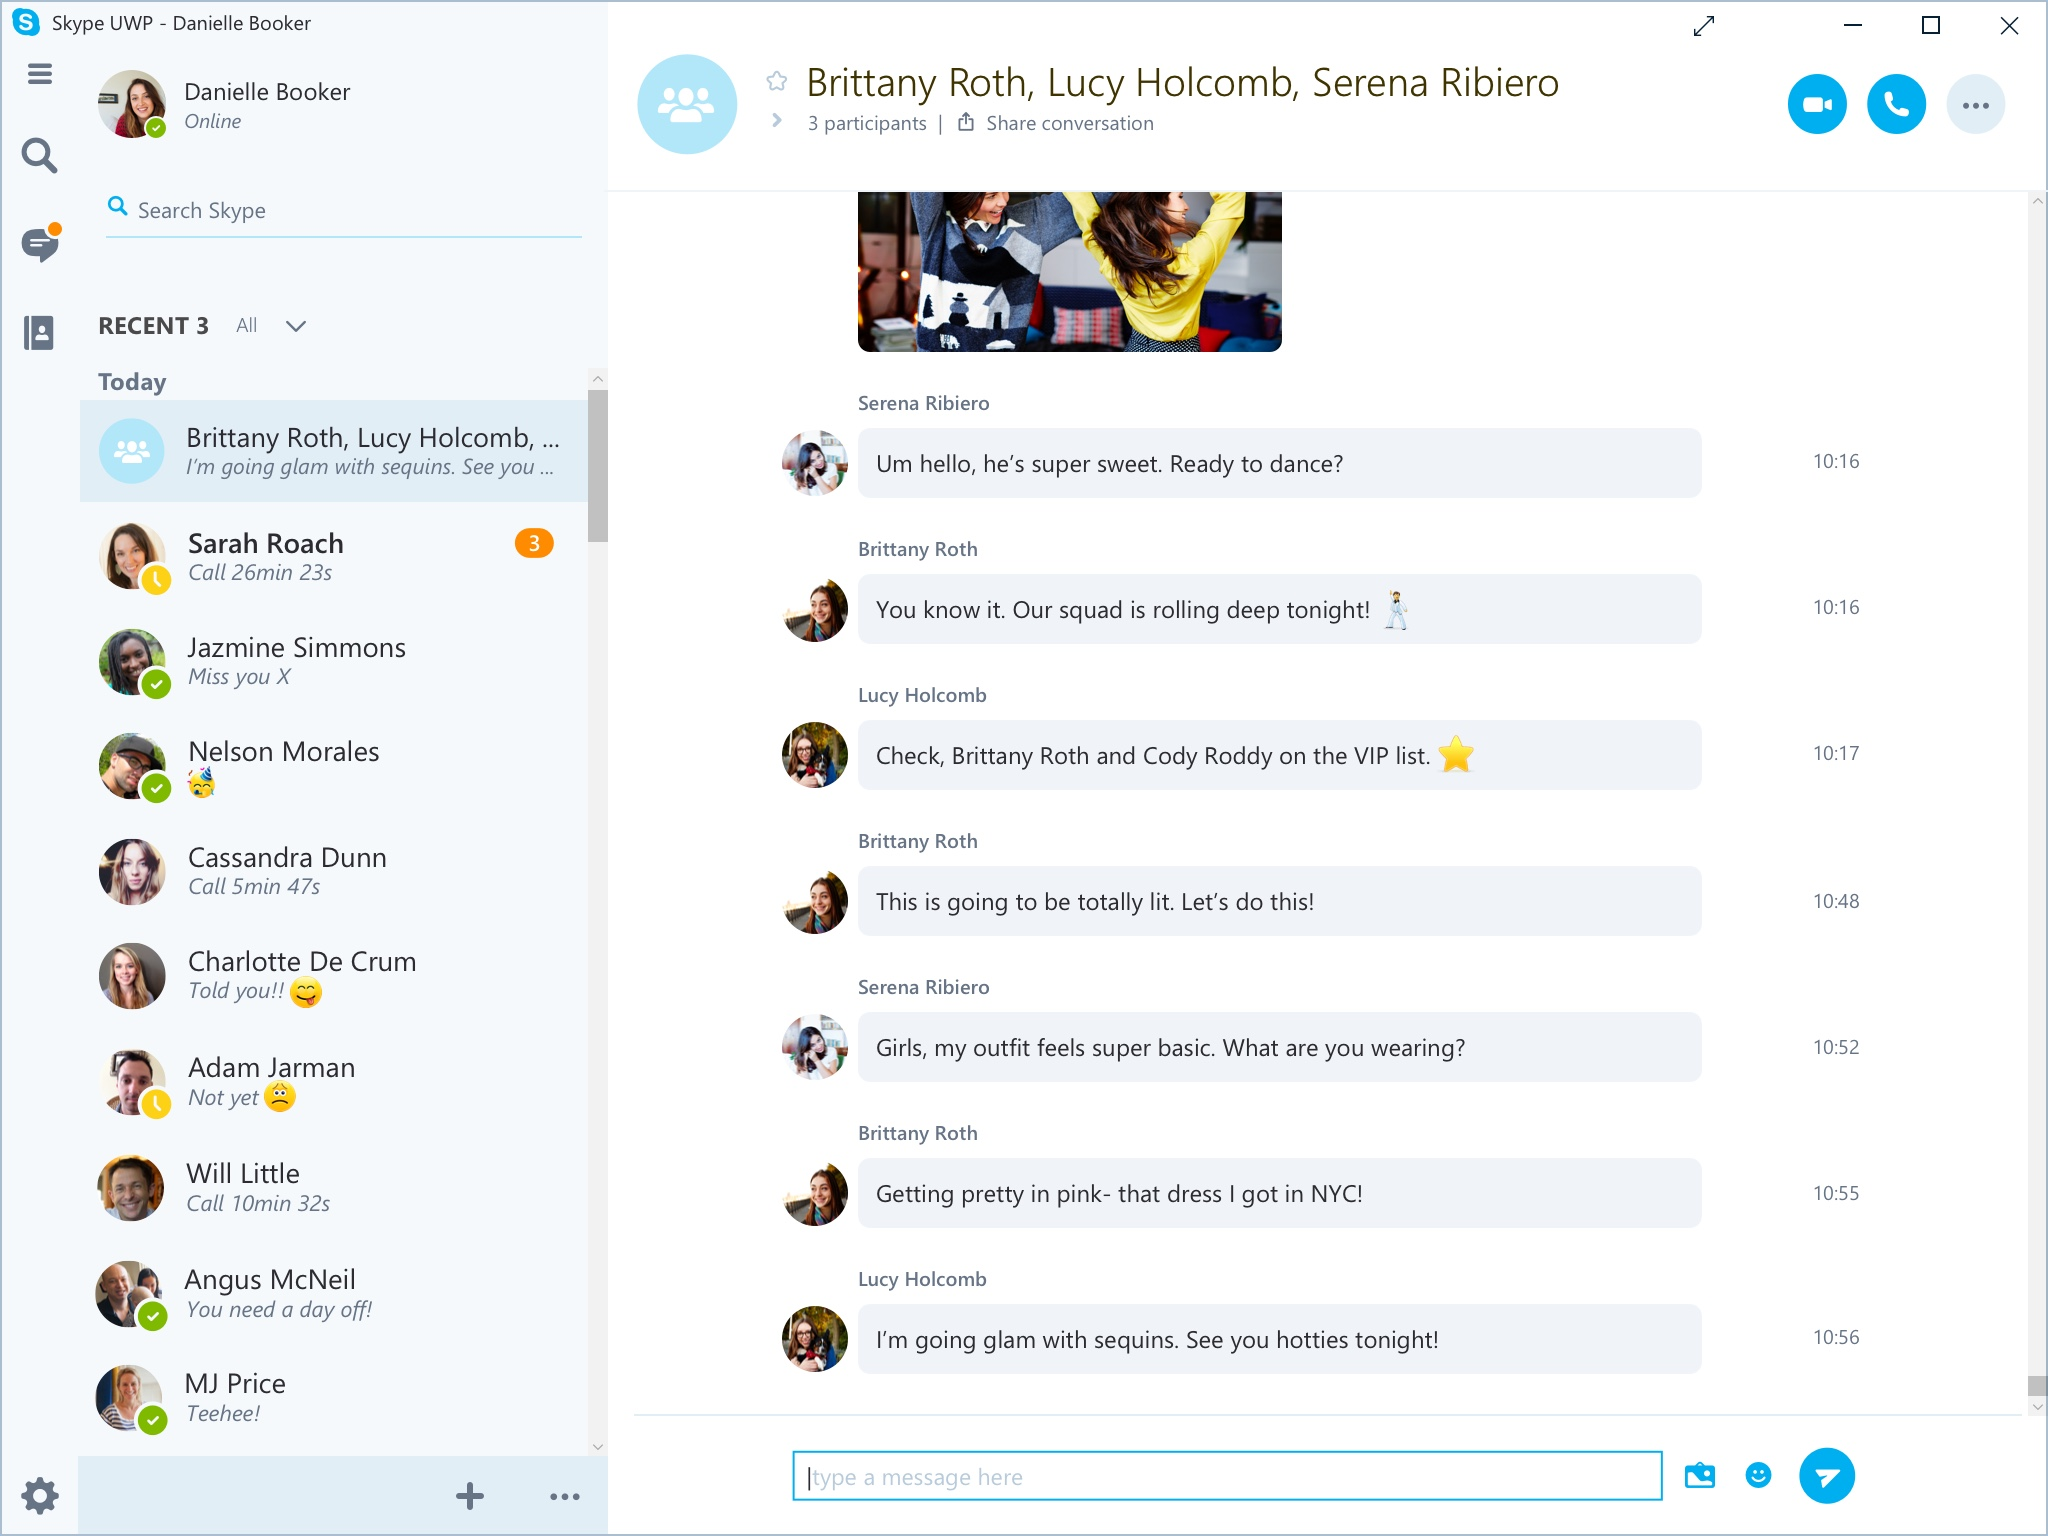 group chat in skype using ipad